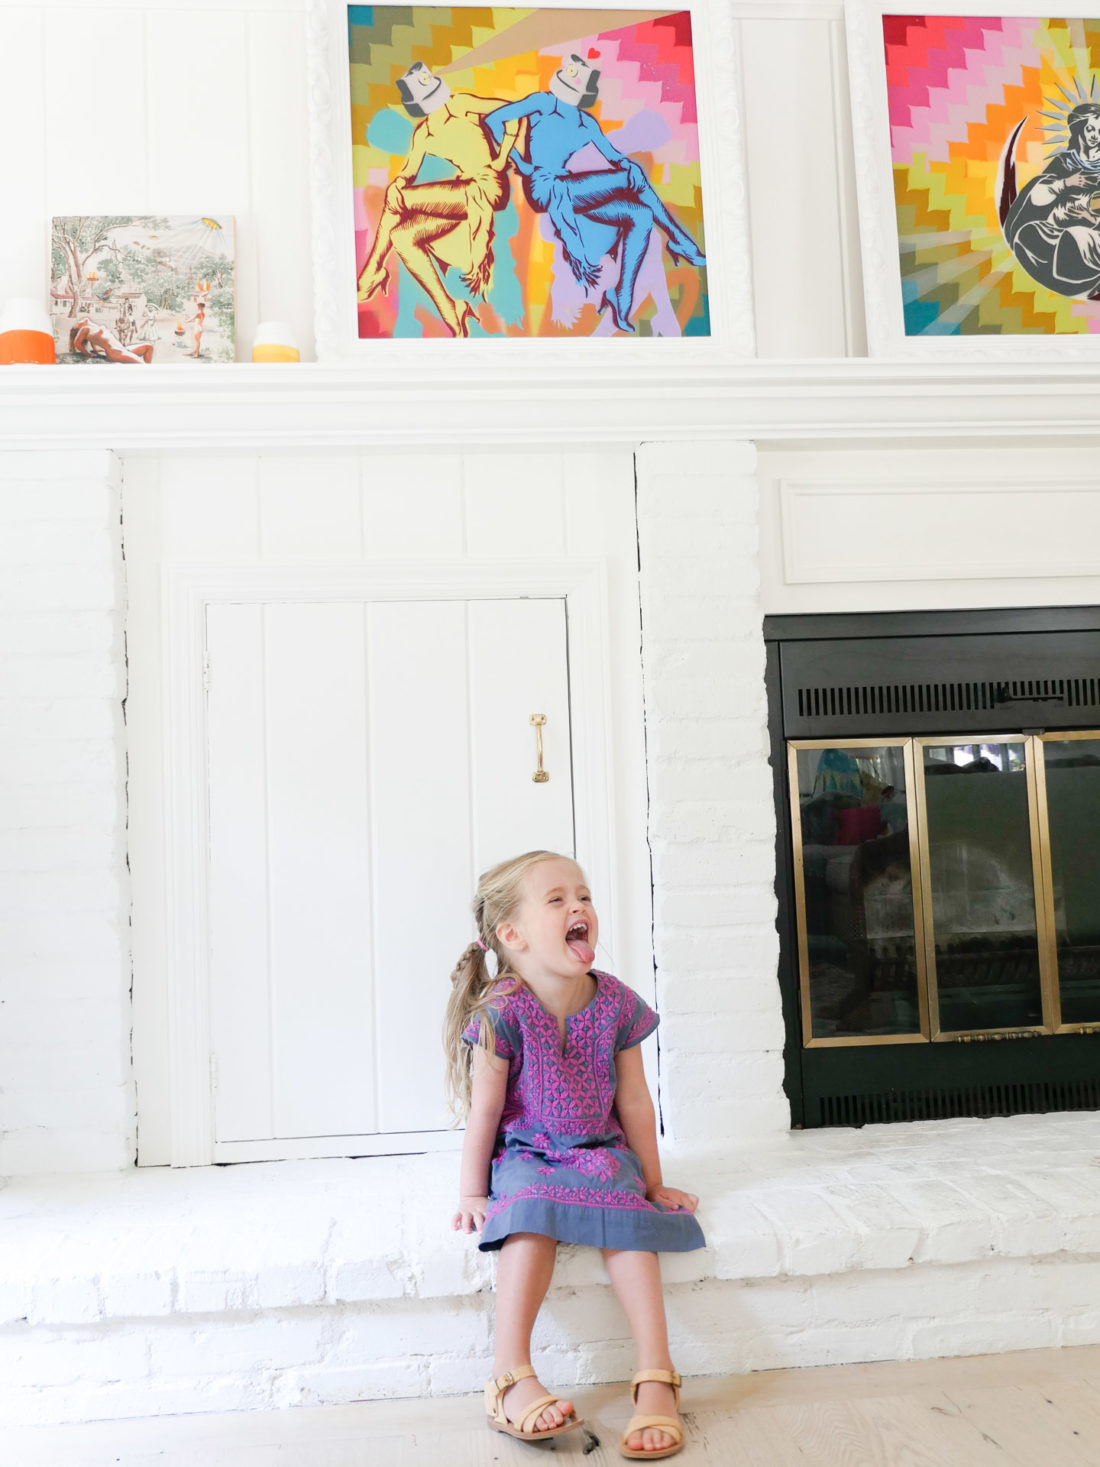 Marlowe Martino sticks her tongue out on the hearth of the fireplace in the family room of her Connecticut home